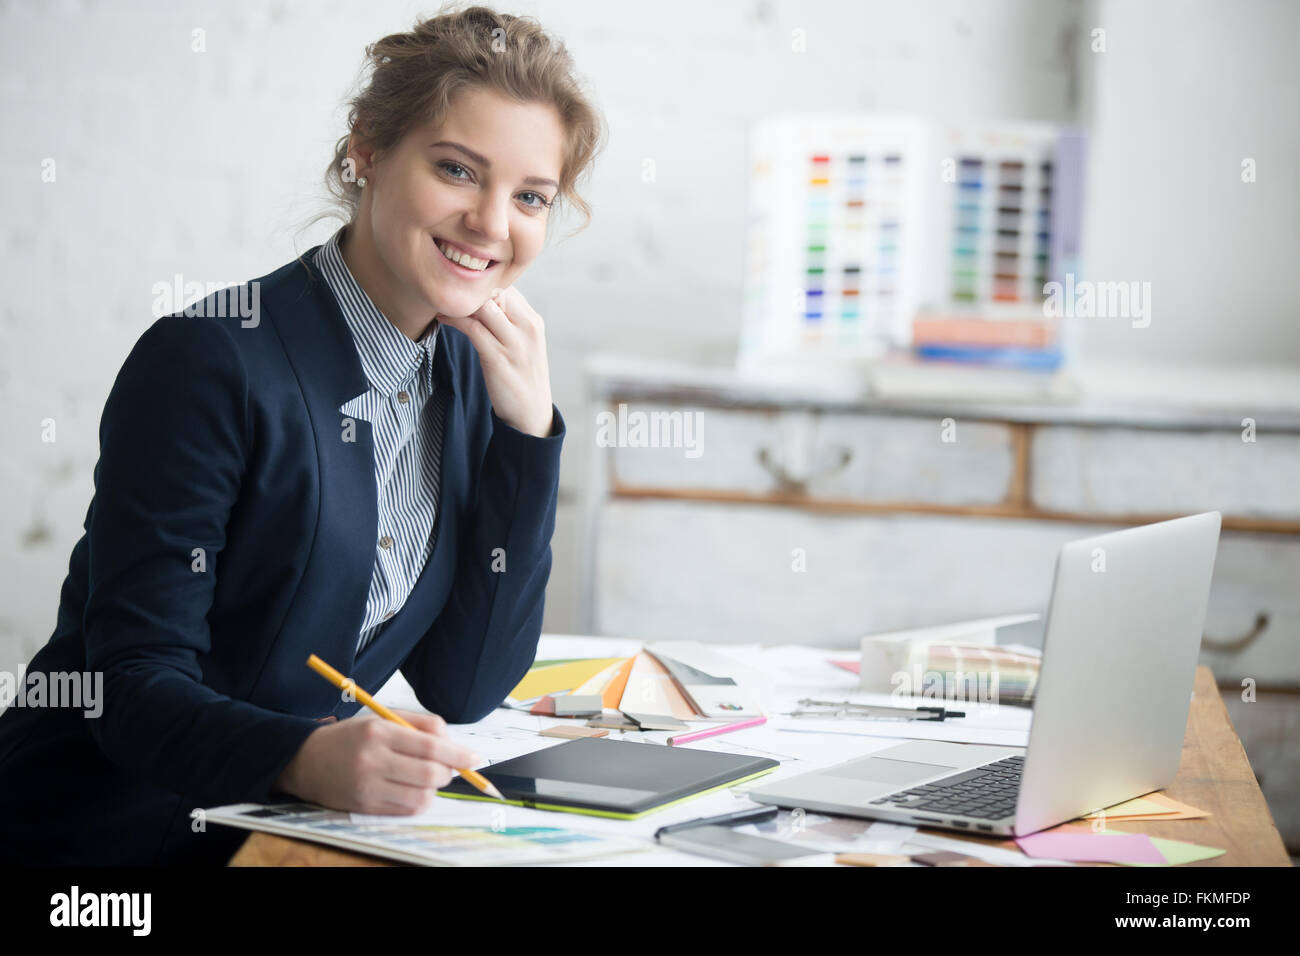 Portrait of beautiful cheerful young designer woman working at home office desk. Attractive model wearing suit holding - Stock Image